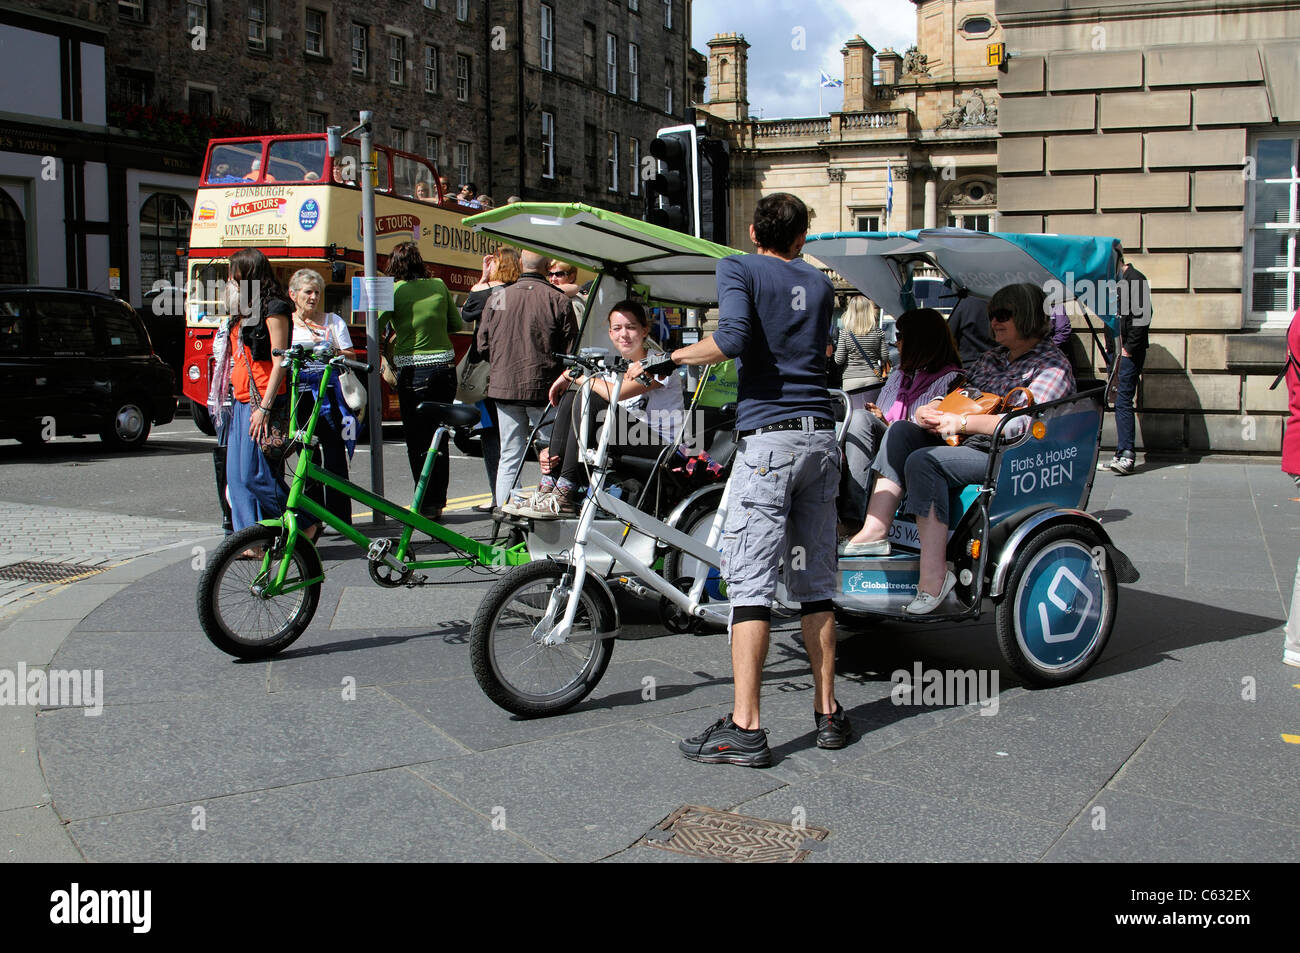 Cycle taxis for hire on a street corner in Edinburgh Scotland UK - Stock Image